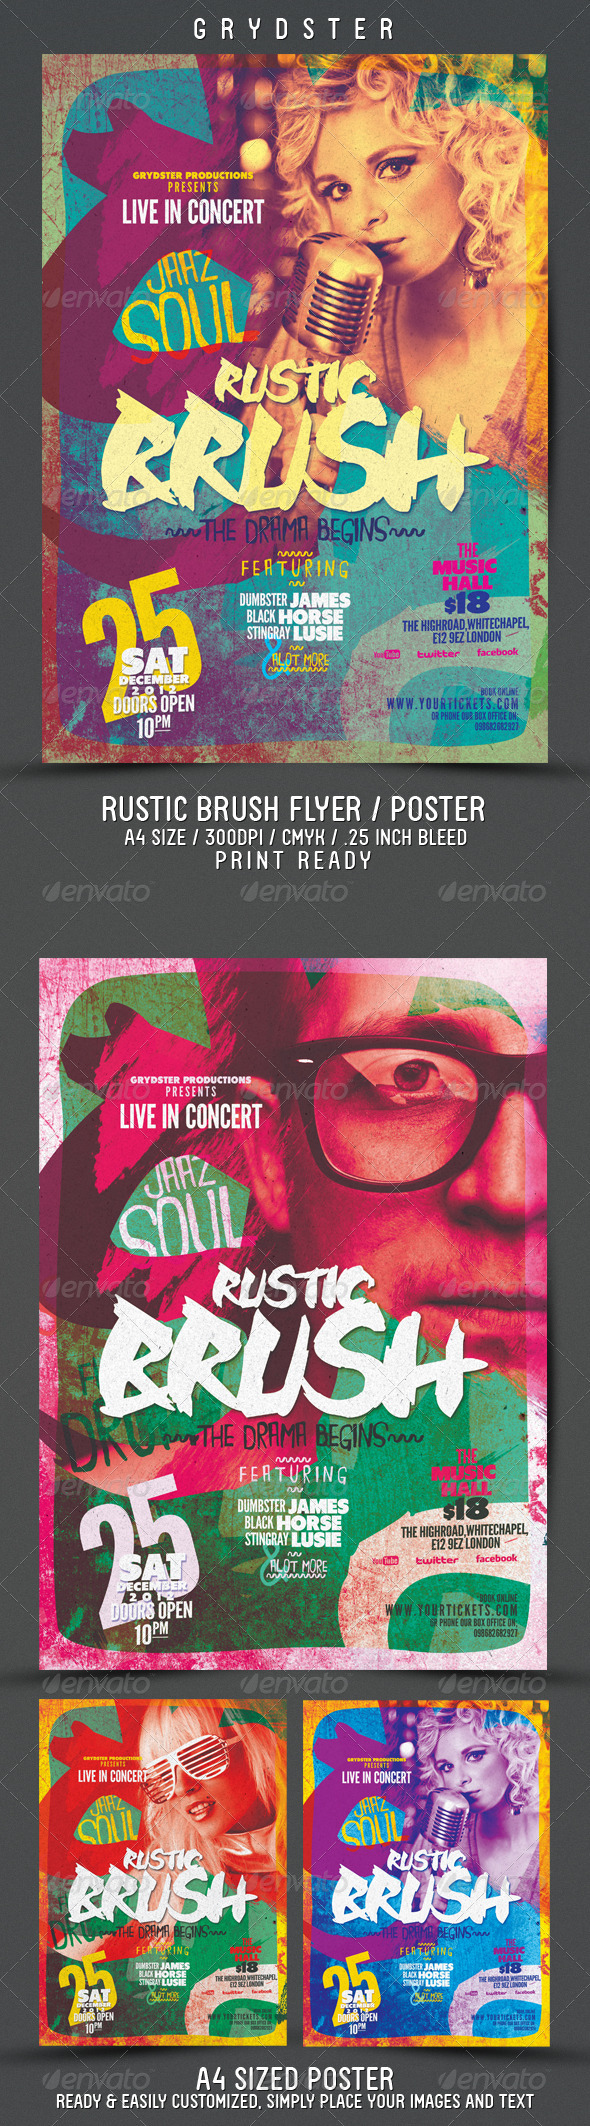 GraphicRiver Rustic Brush Poster Flyer 3494984